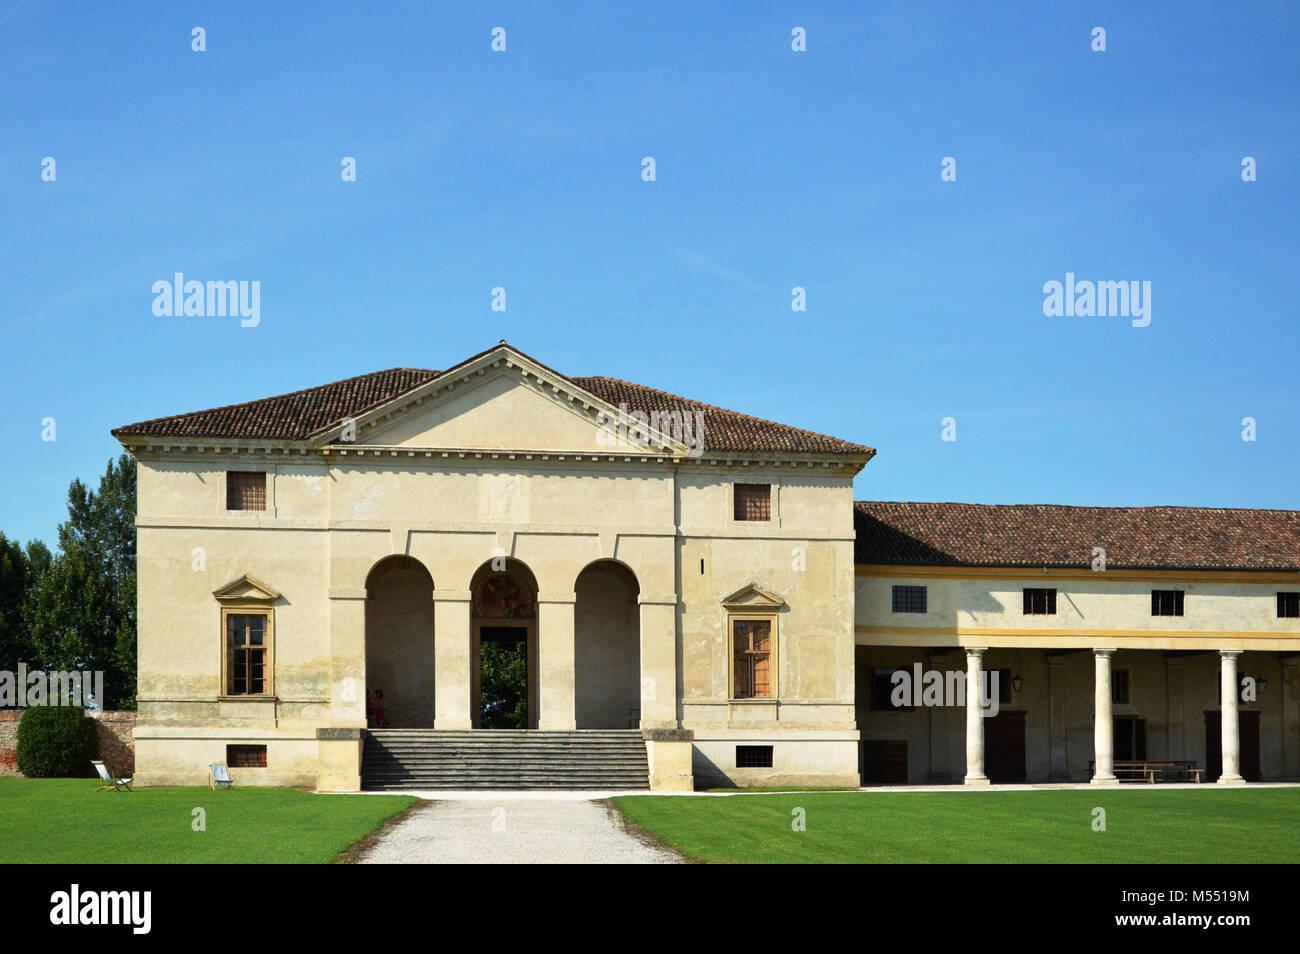 Villa Saraceno Designed By Andrea Palladio Architect Italy Stock